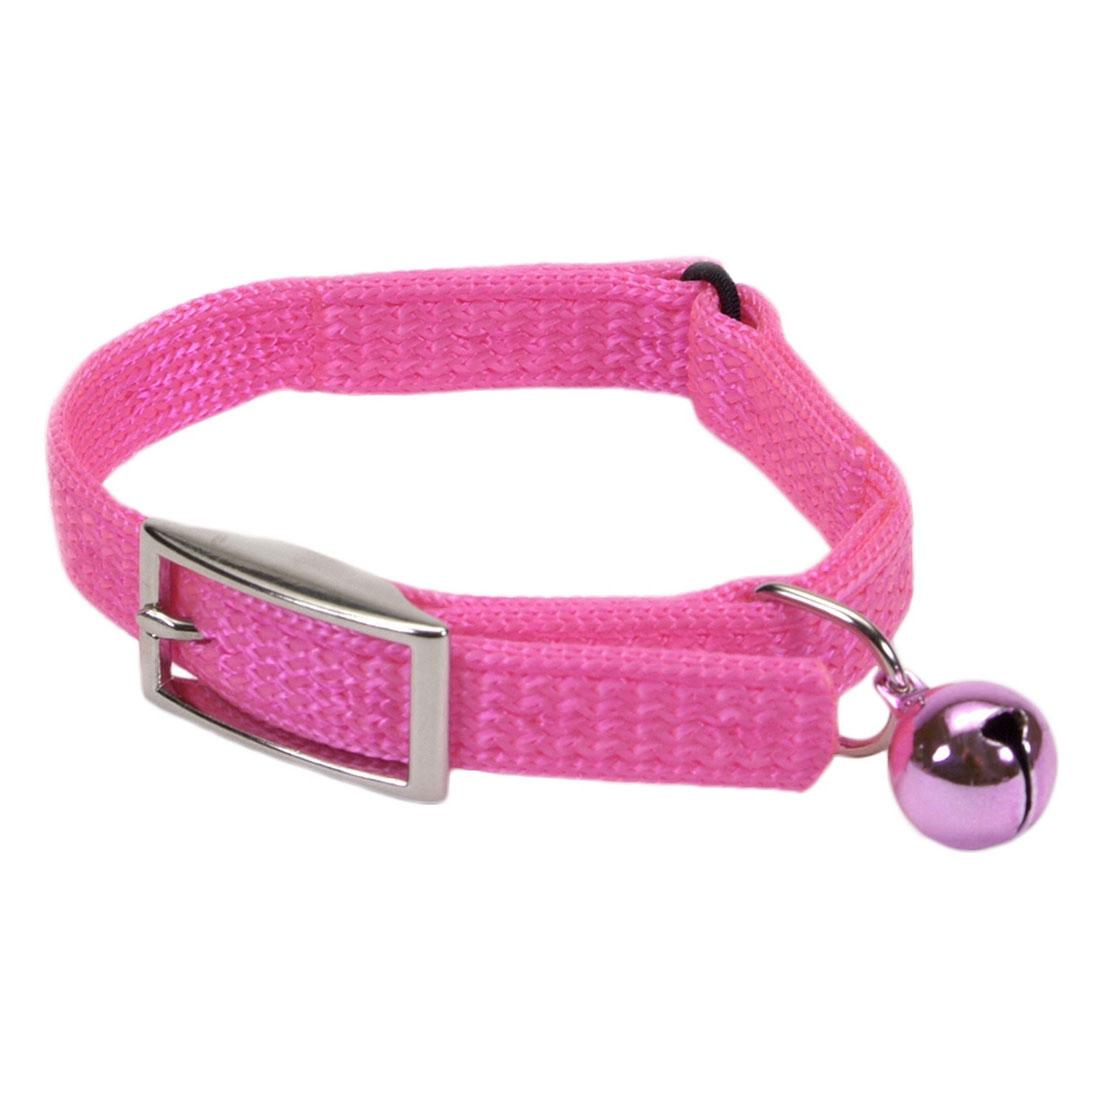 Safe Cat Snag-Proof Safety Cat Collar, Neon Pink, 3/8-in x 10-in